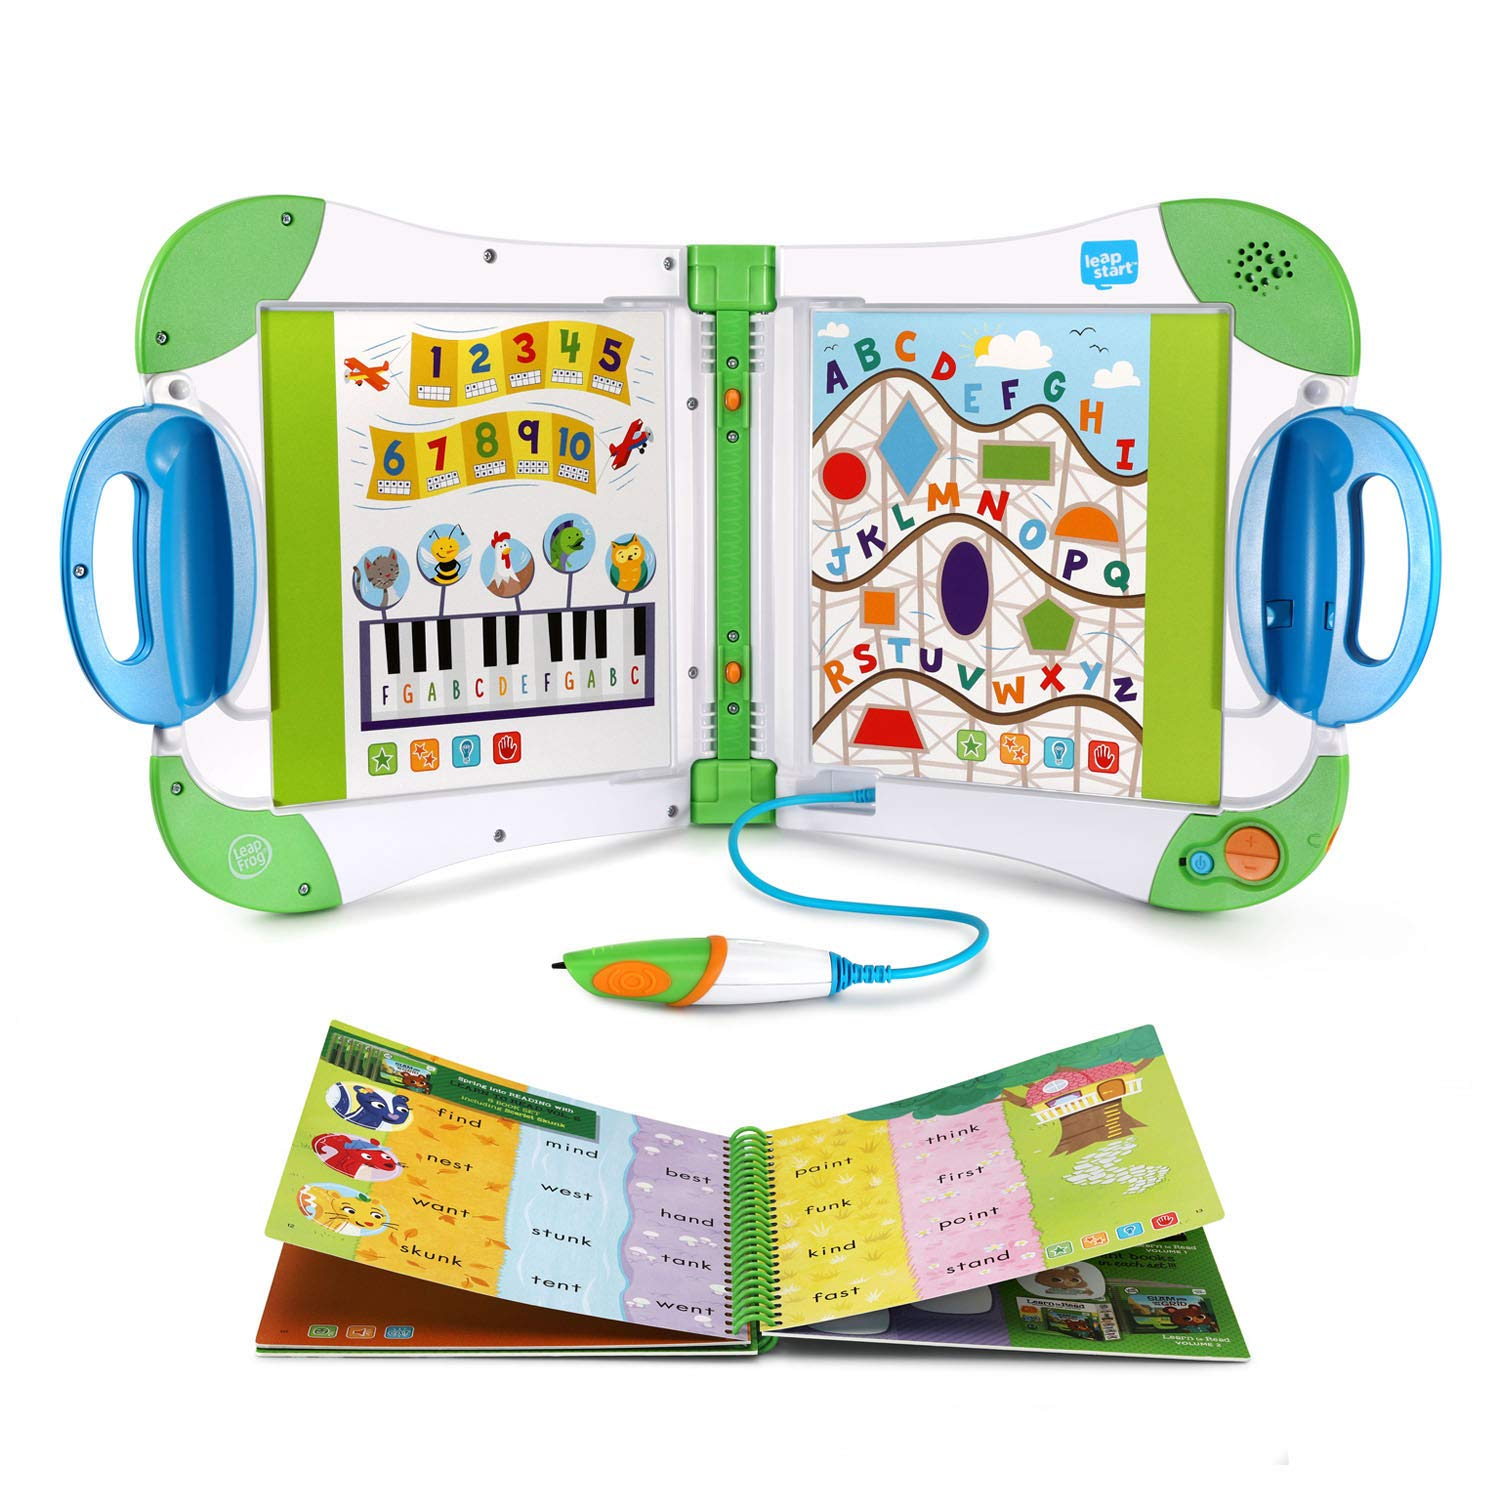 LeapFrog LeapStart Interactive Learning System, Green (Frustration Free Packaging) by LeapFrog